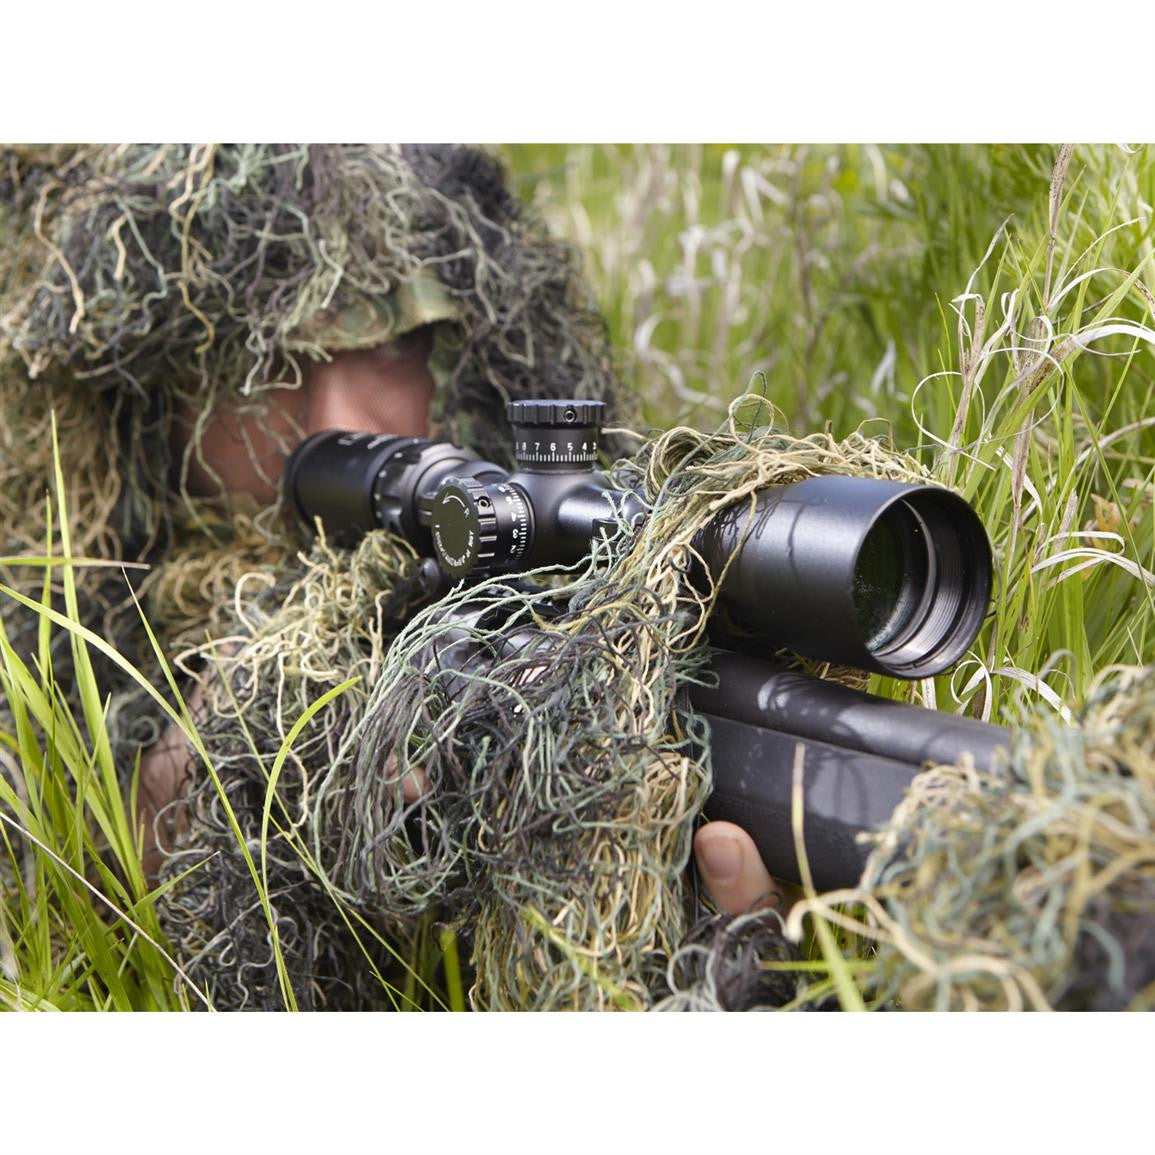 SPG416X44MD ghillie suit sniper